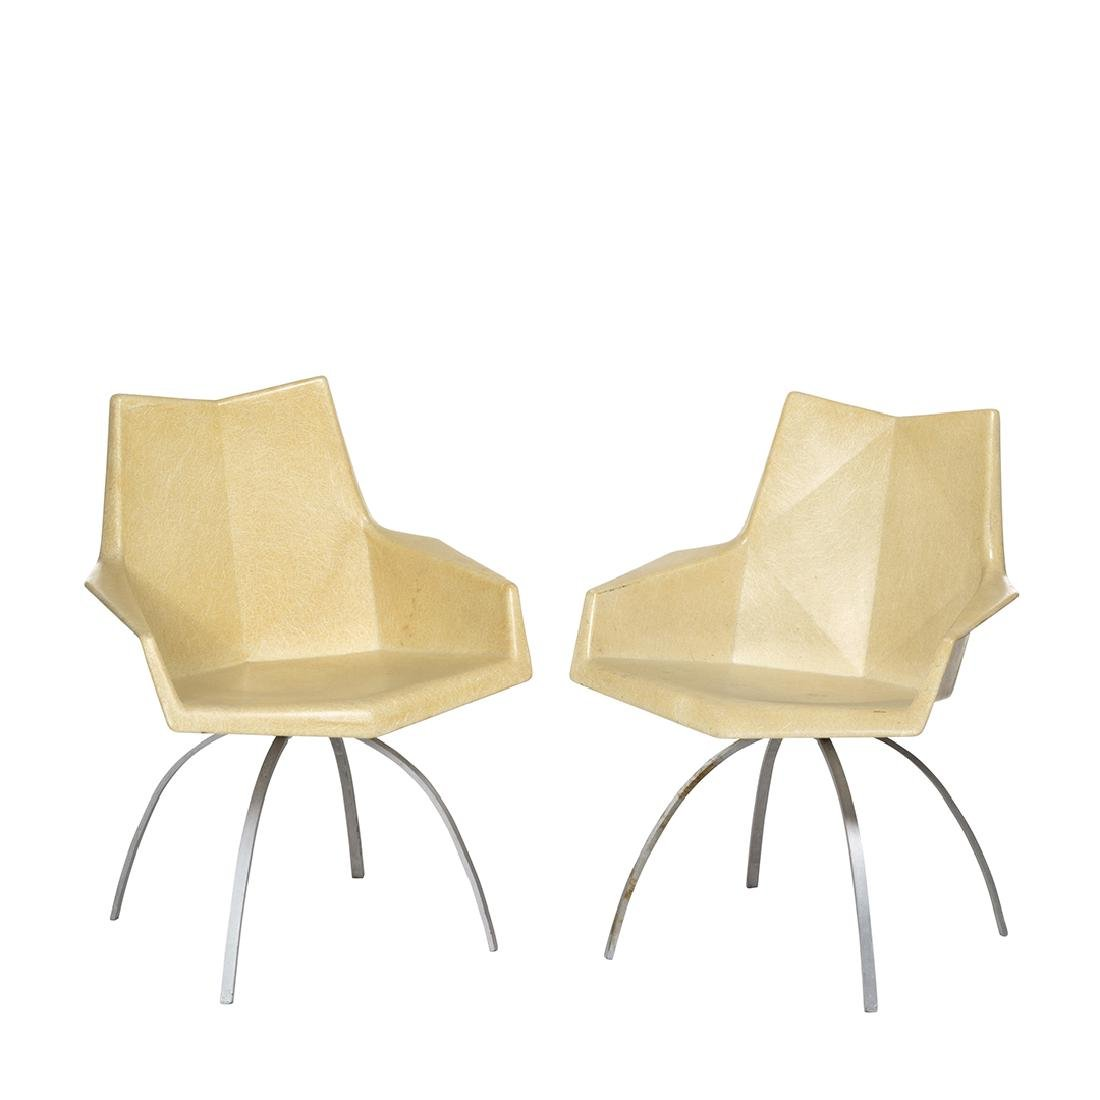 Paul McCobb Origami Chairs (2)